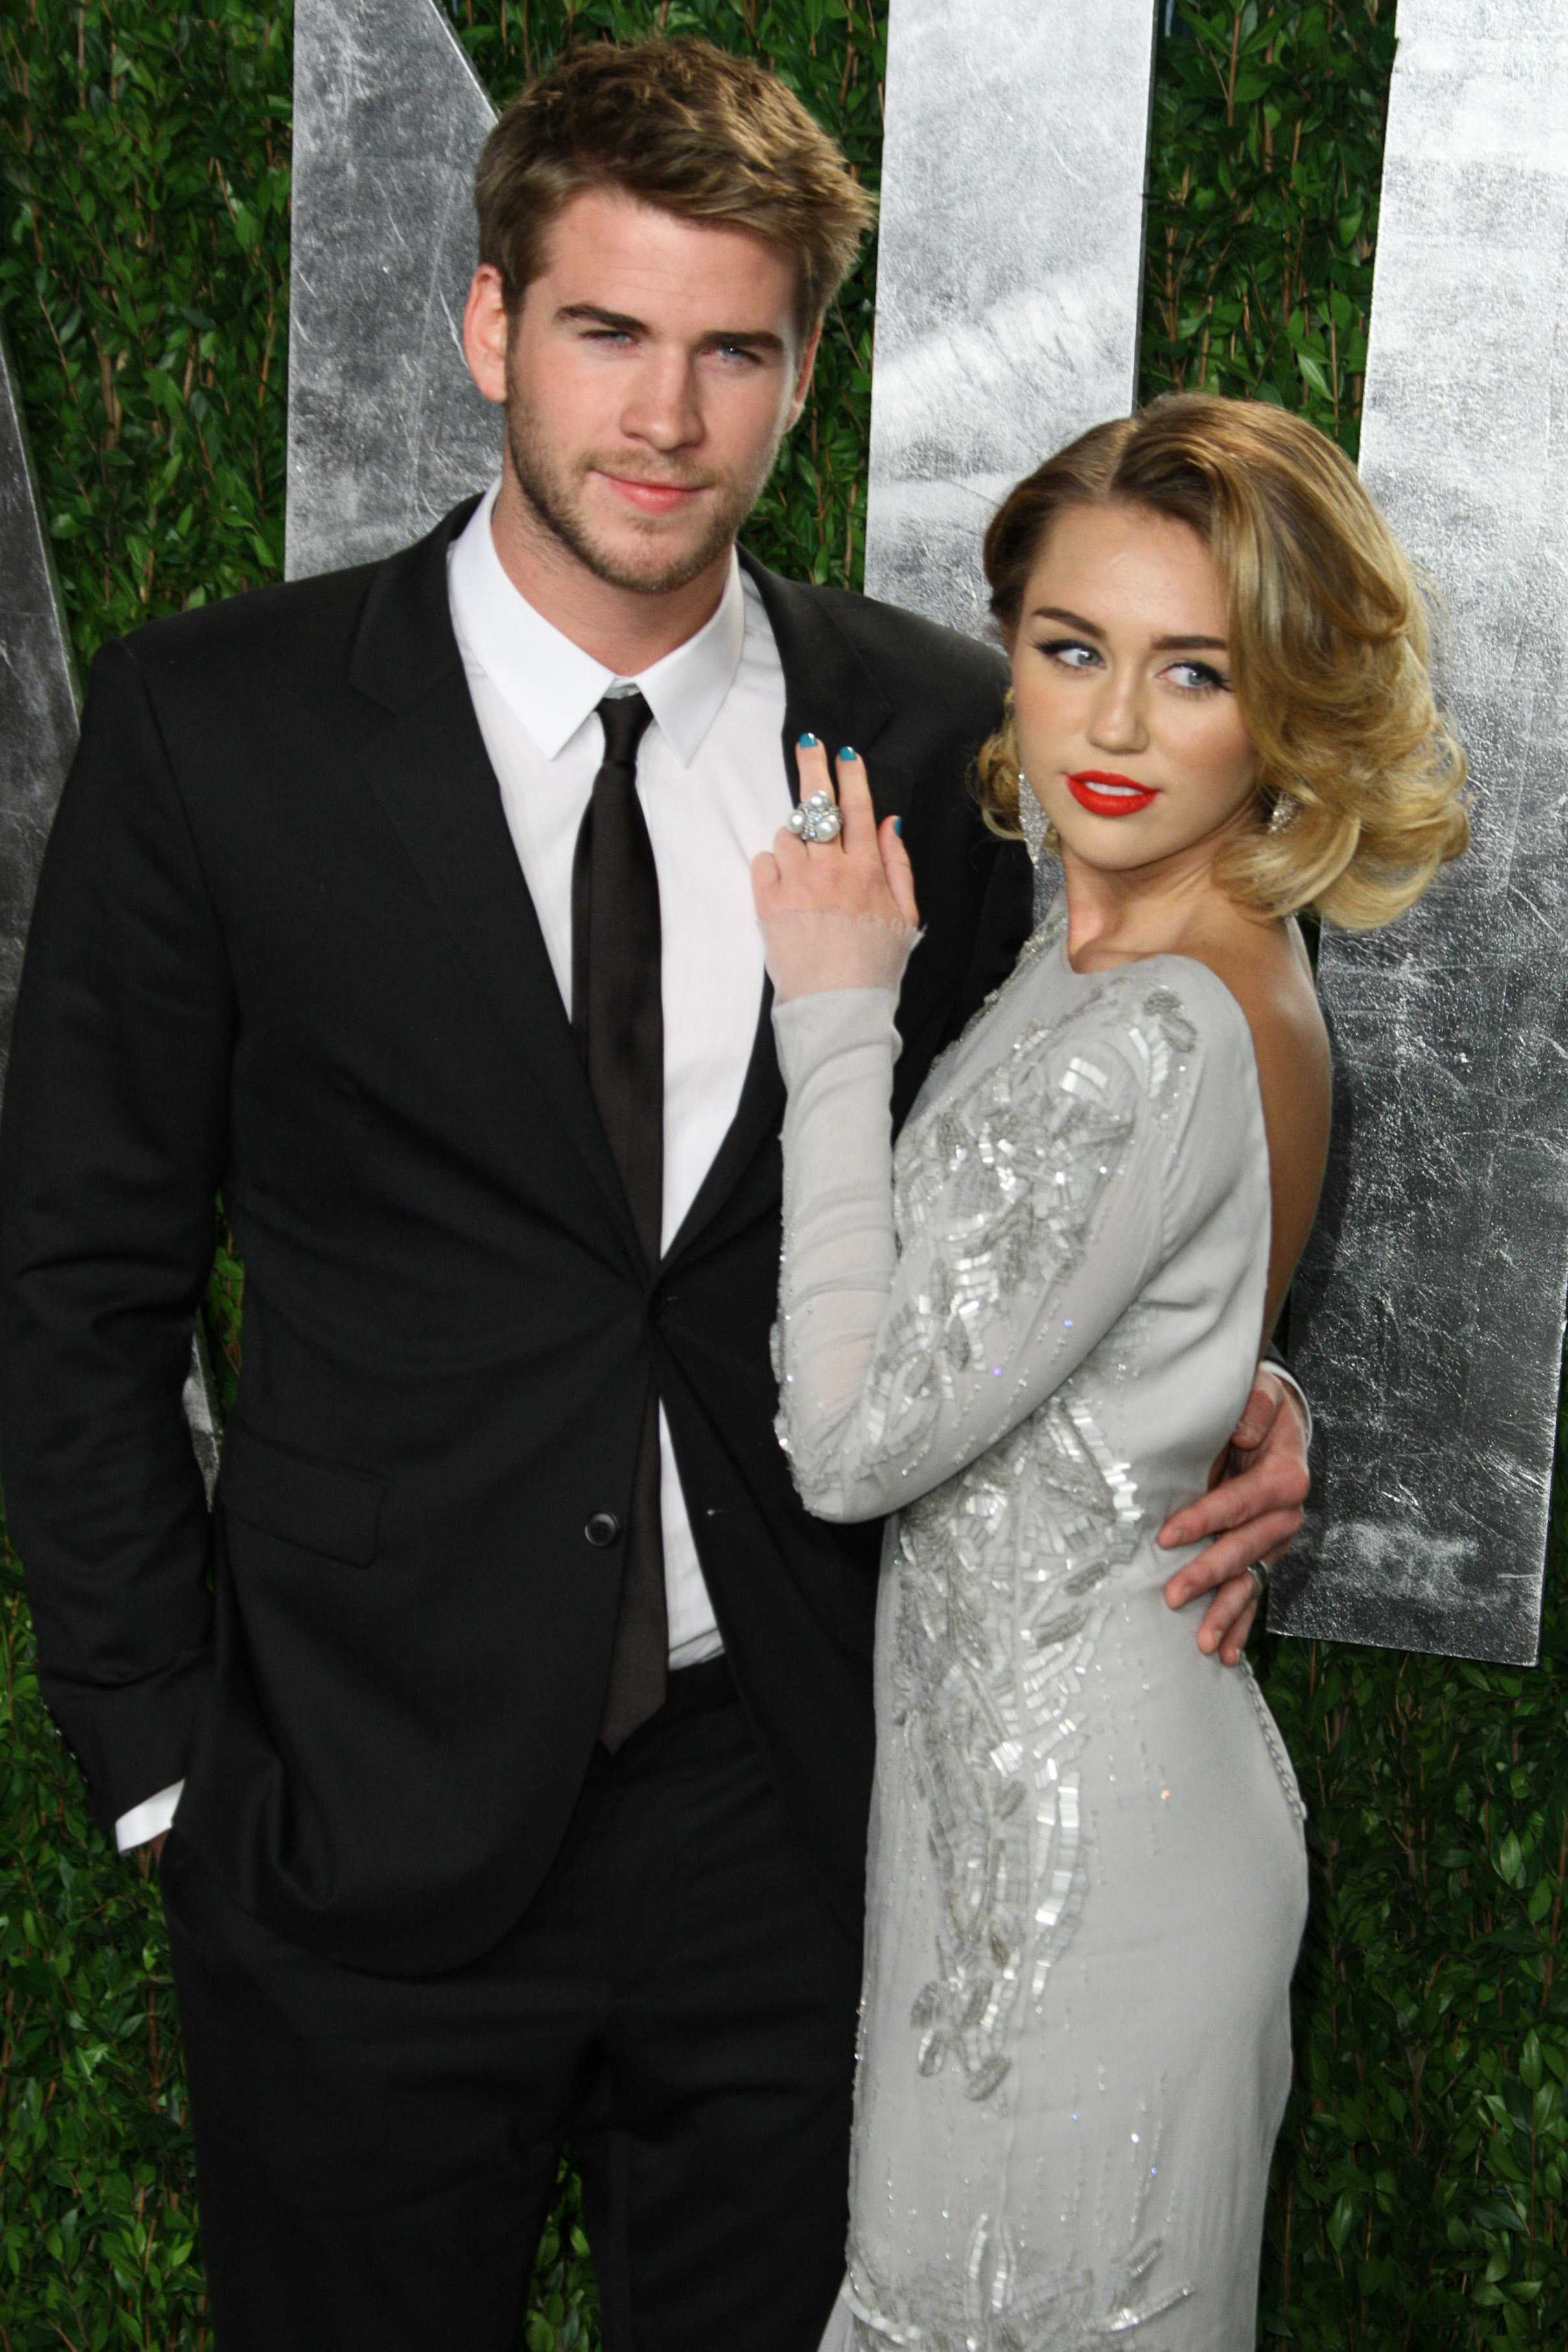 Miley Cyrus and Liam Hemsworth have officially split. The couple, who got engaged in 